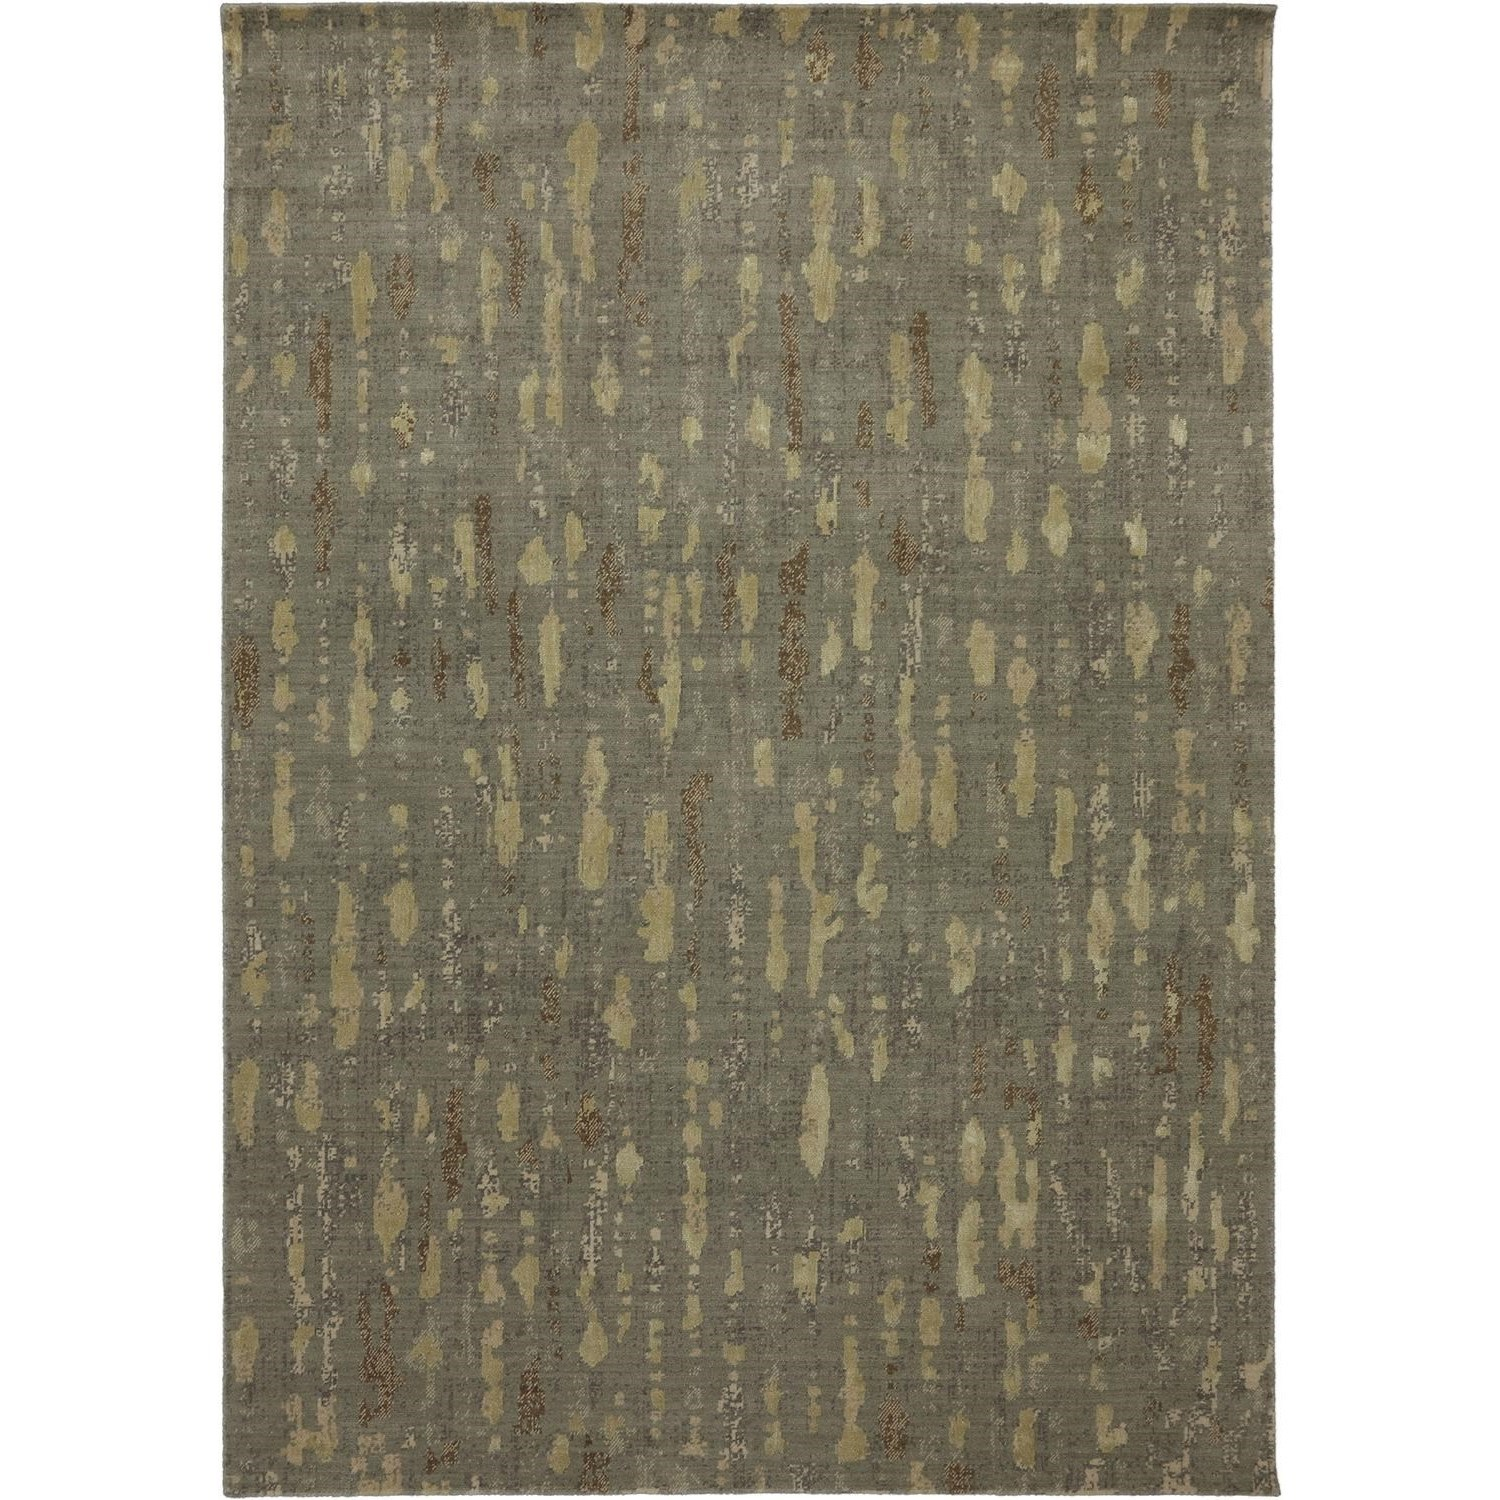 Evanescent 7'9x9'9 Prato Taupe Rug by Karastan Rugs at Alison Craig Home Furnishings